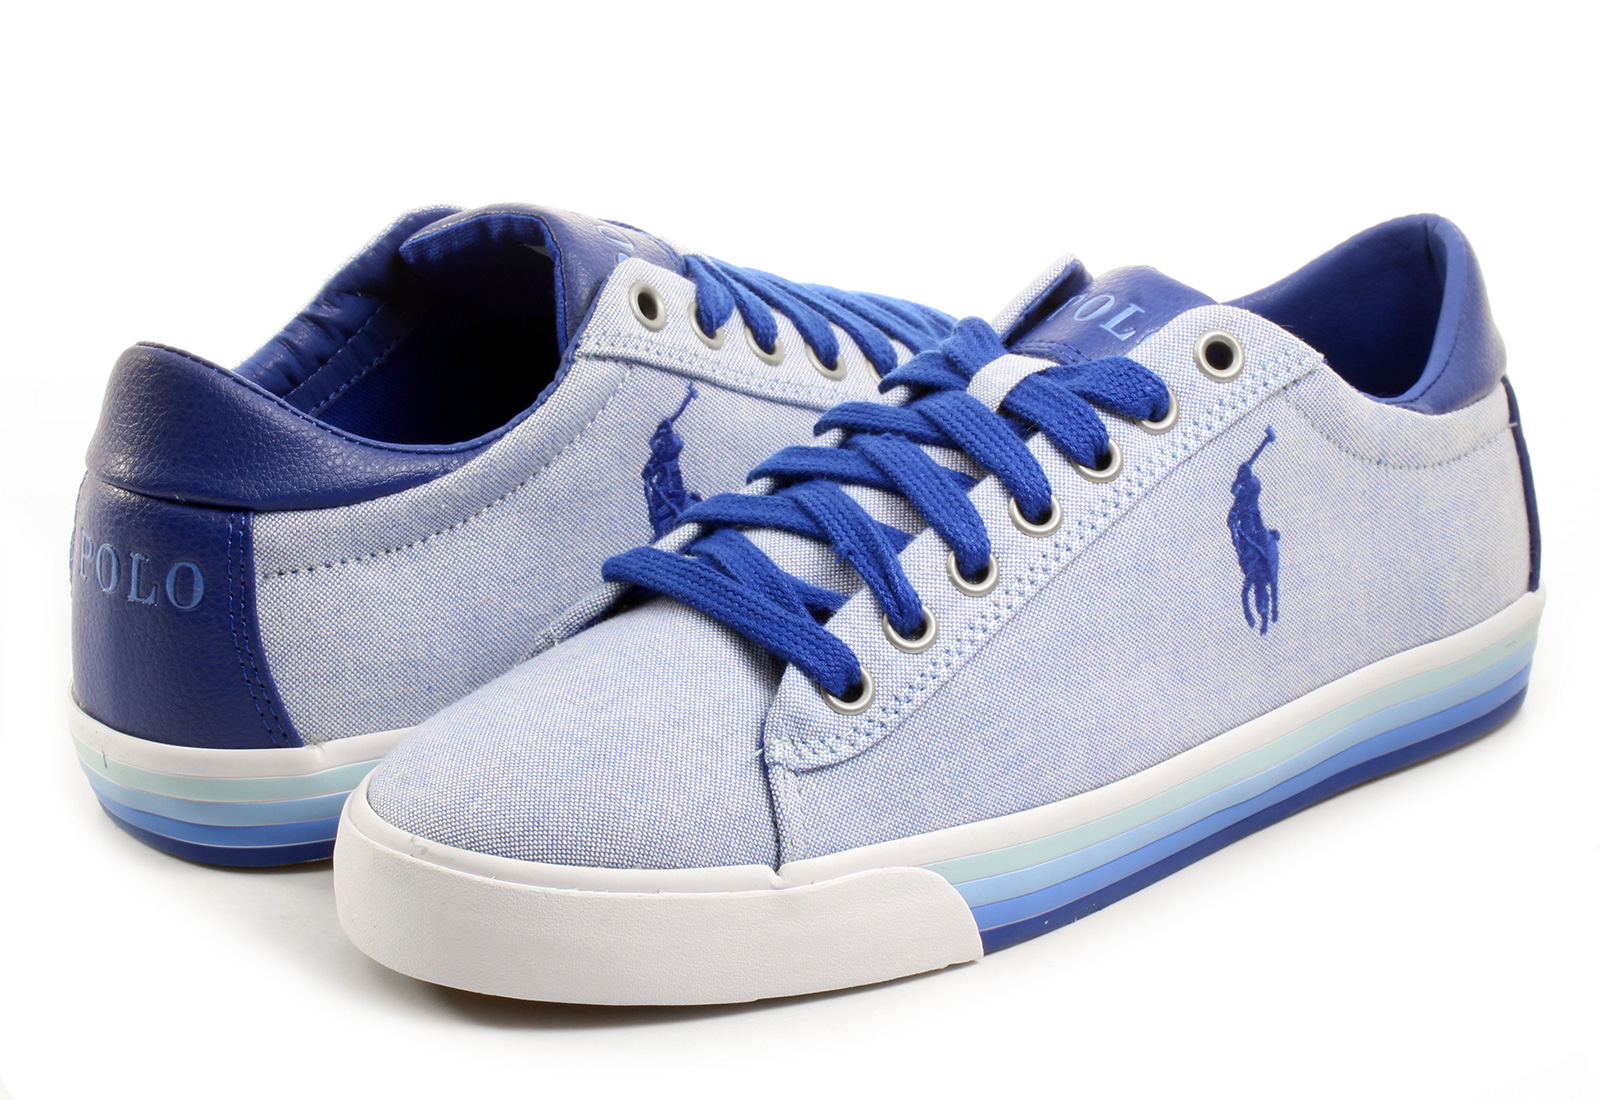 polo ralph lauren shoes harvey 2059 c a4001 online shop for sneakers shoes and boots. Black Bedroom Furniture Sets. Home Design Ideas